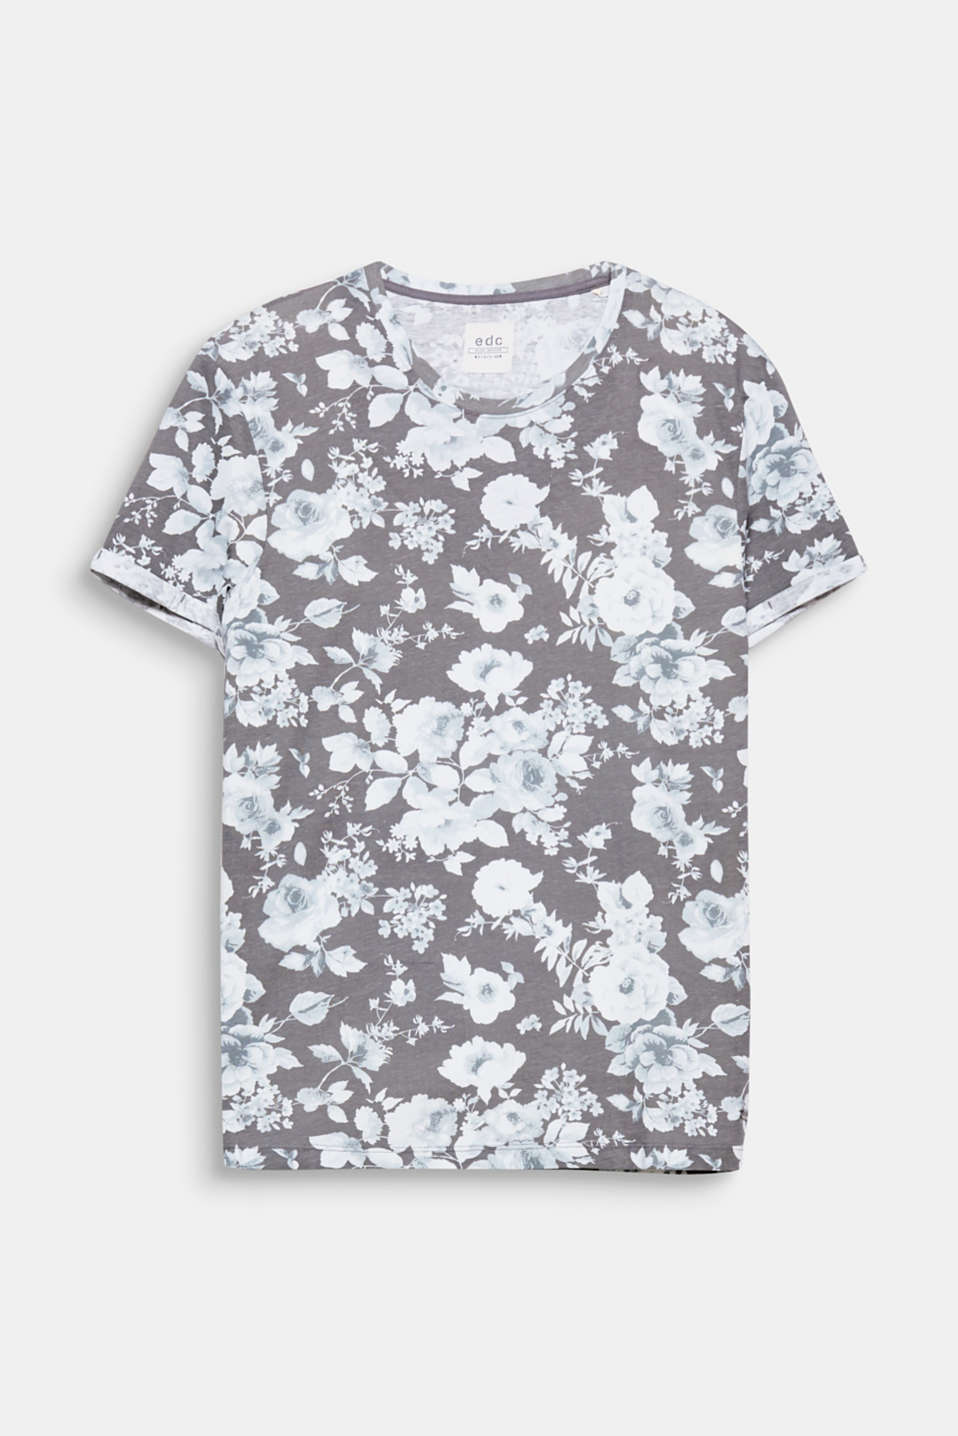 We love flowers! The floral, all-over print gives this T-shirt its fresh look.